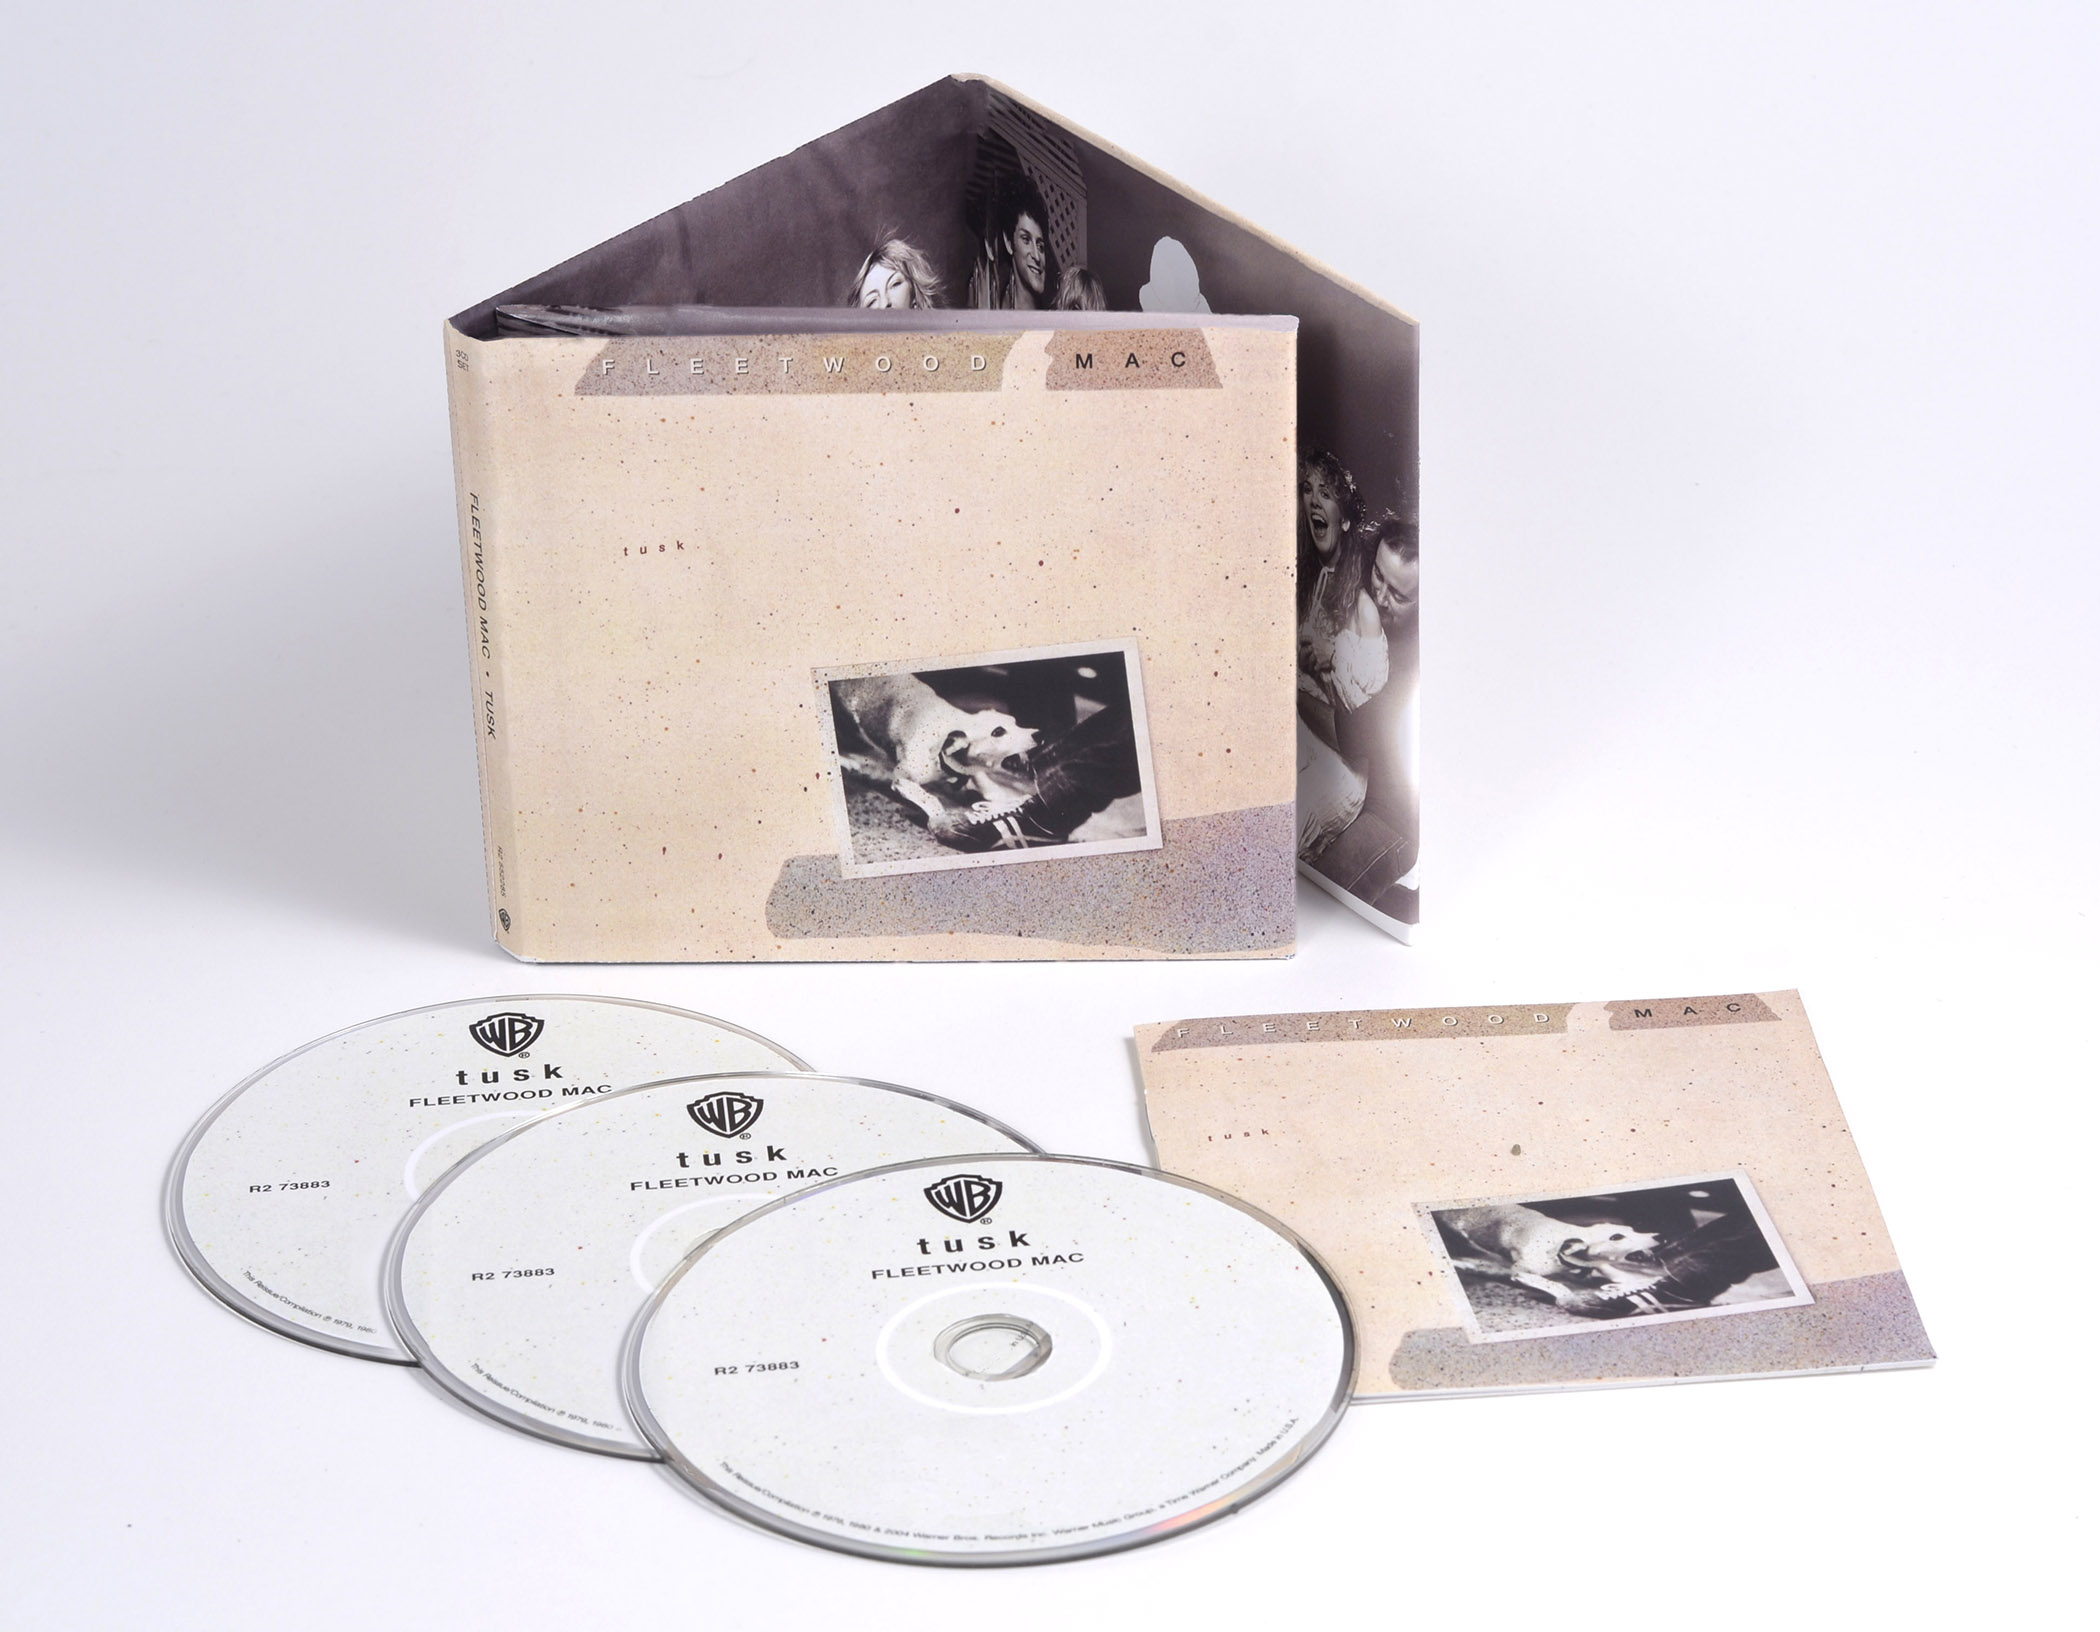 Fleetwood Mac TUSK 3CD Product Shot